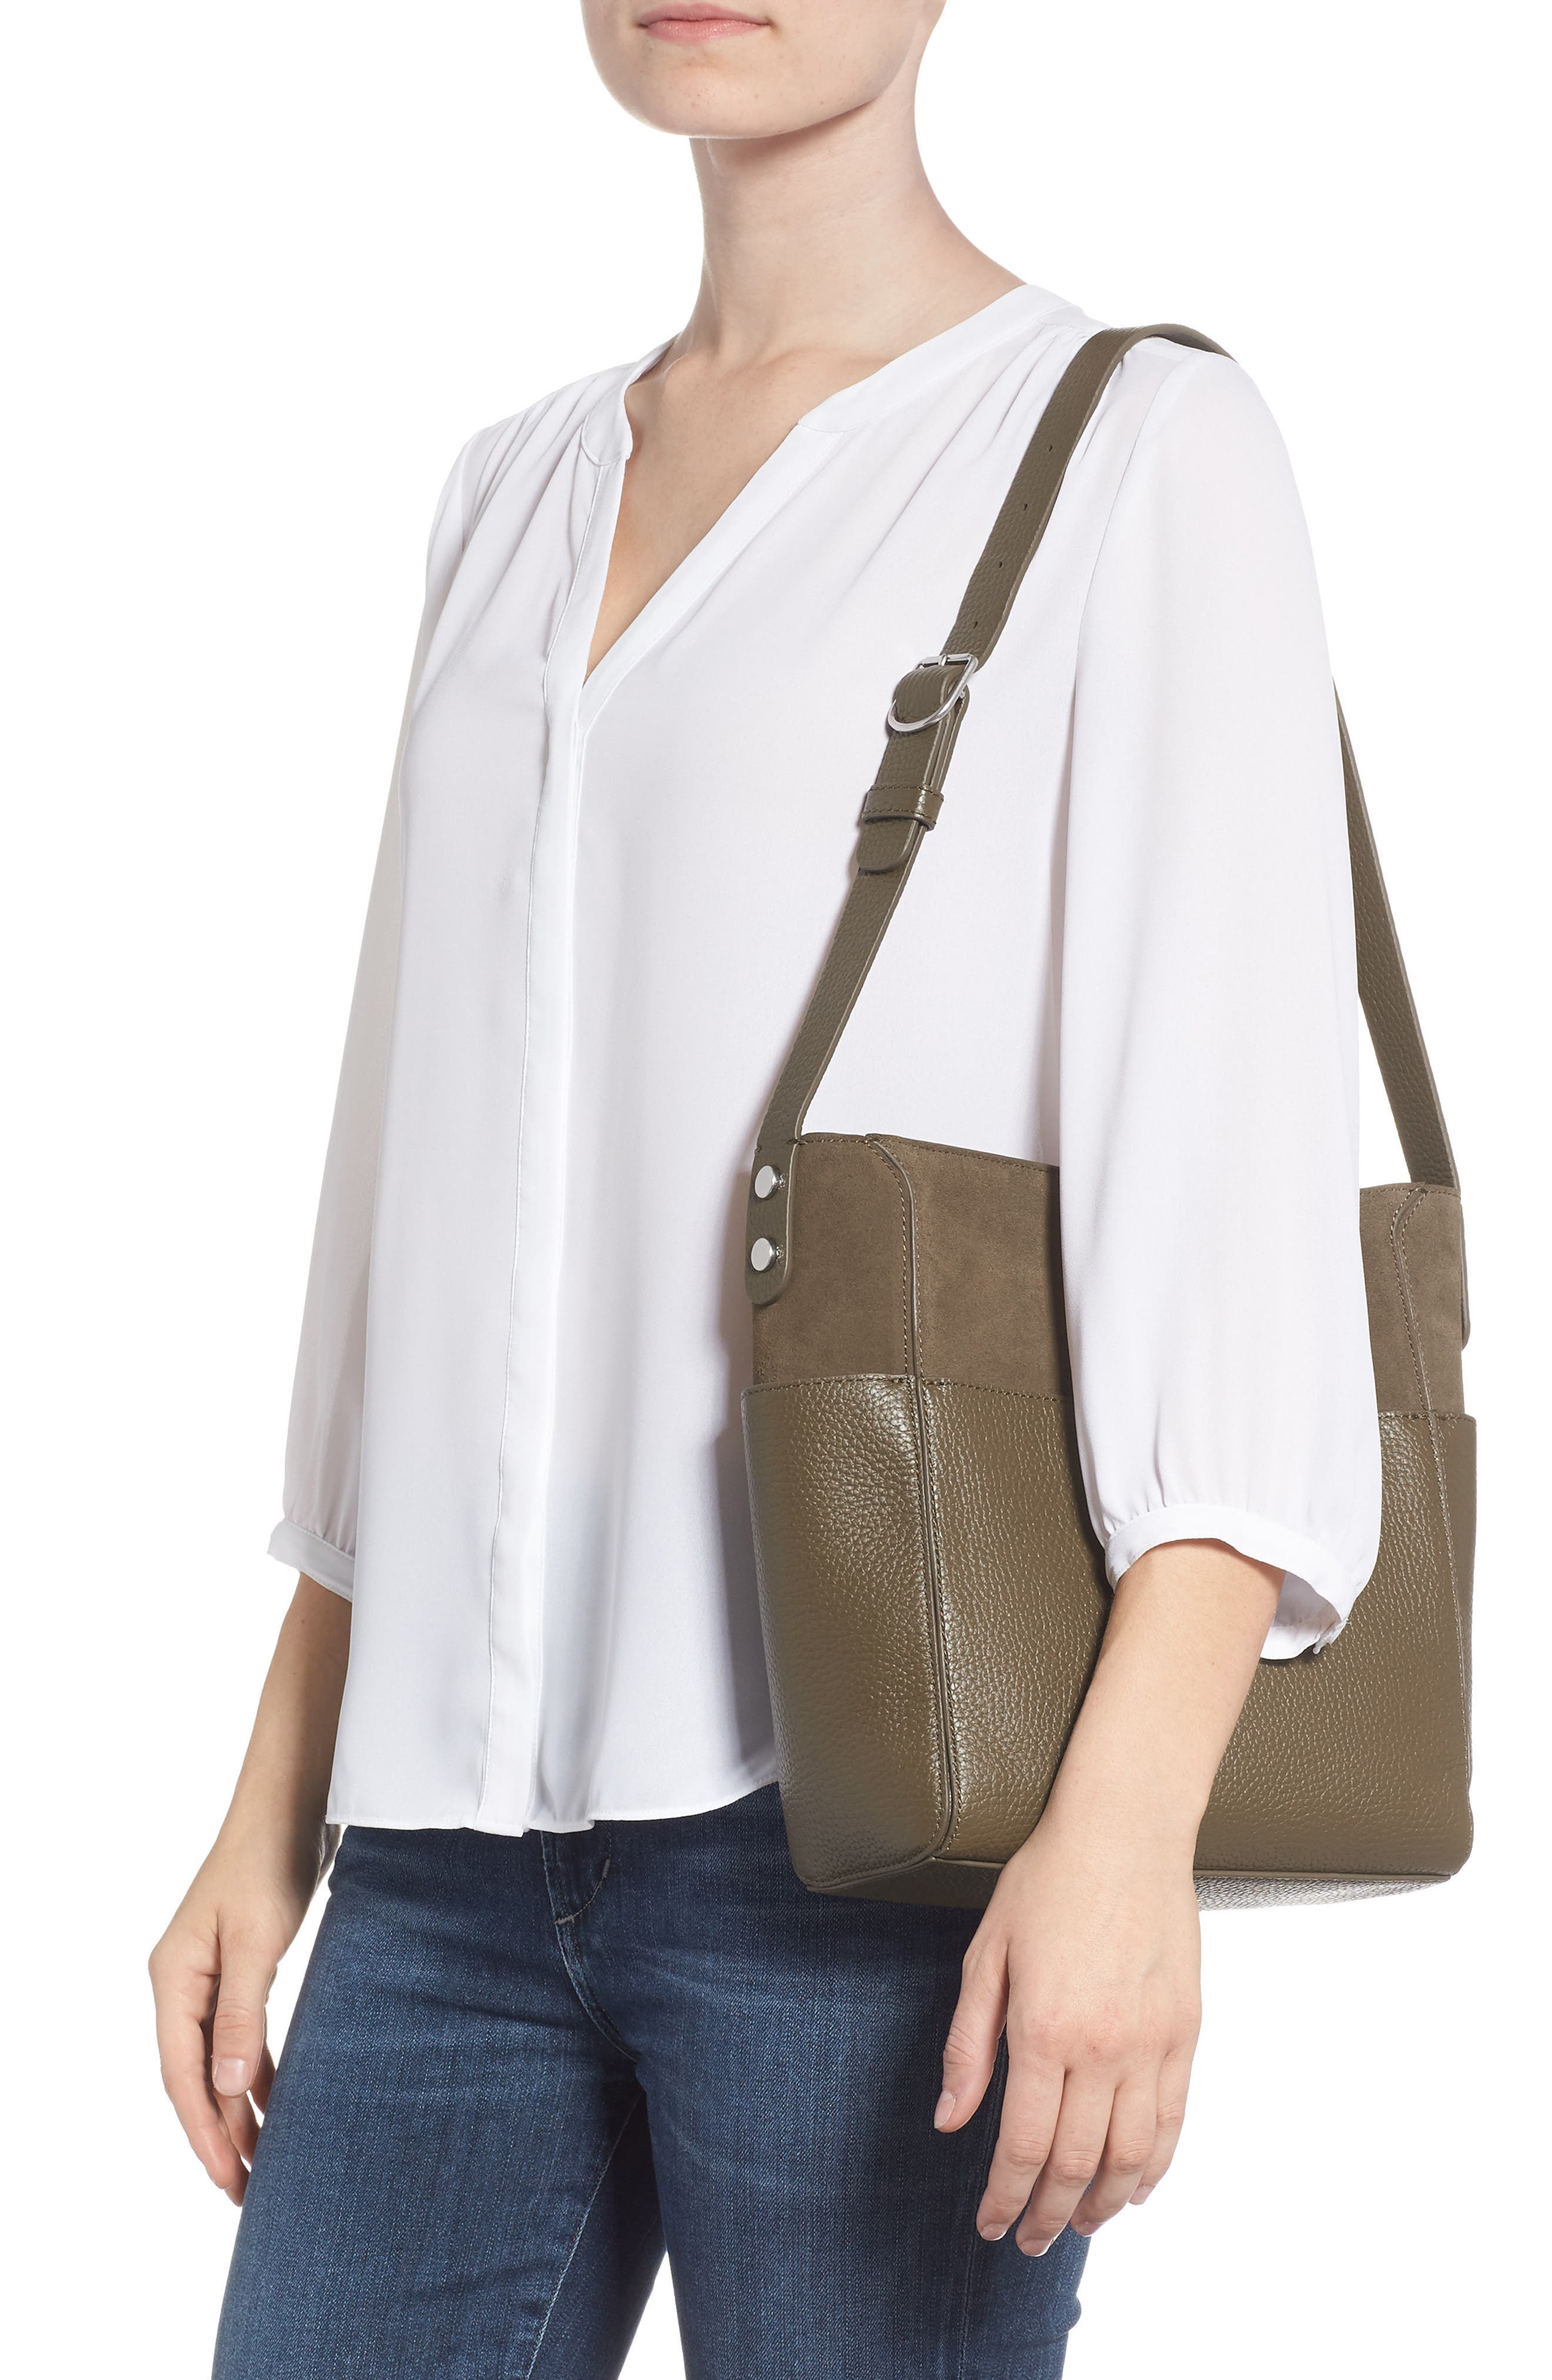 Campbell Leather & Suede Bucket Bag,                             Alternate thumbnail 2, color,                             OLIVE GROVE